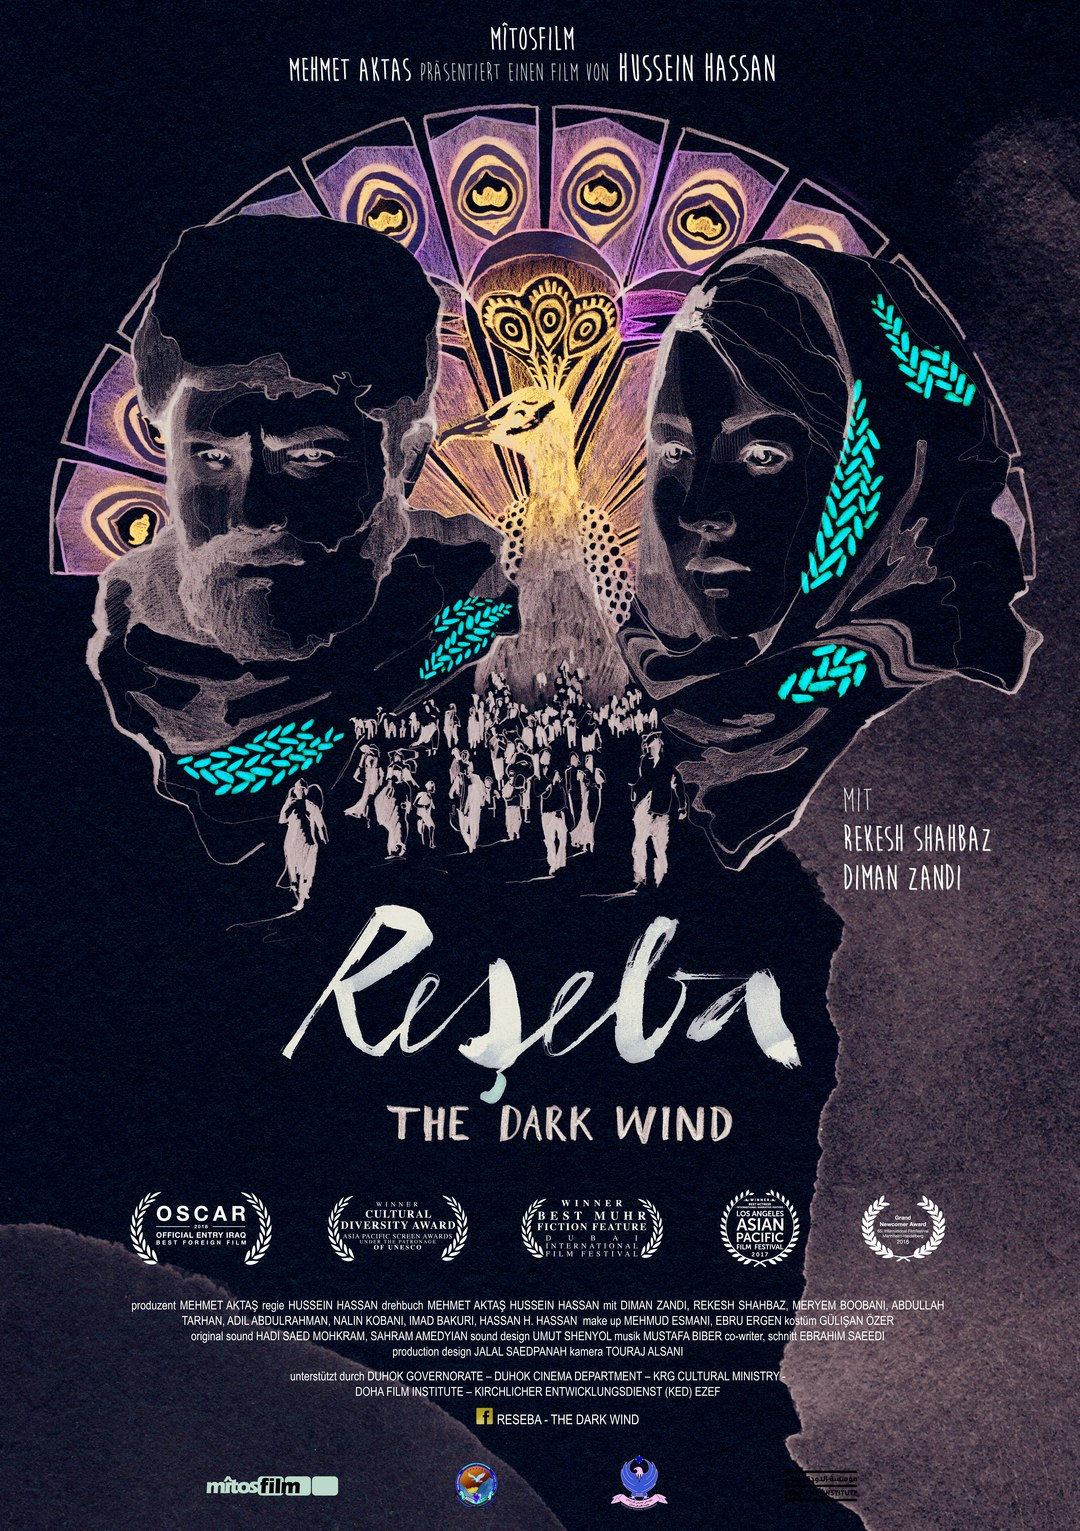 Reseba - The Dark Wind Trailer - Bild 1 von 1